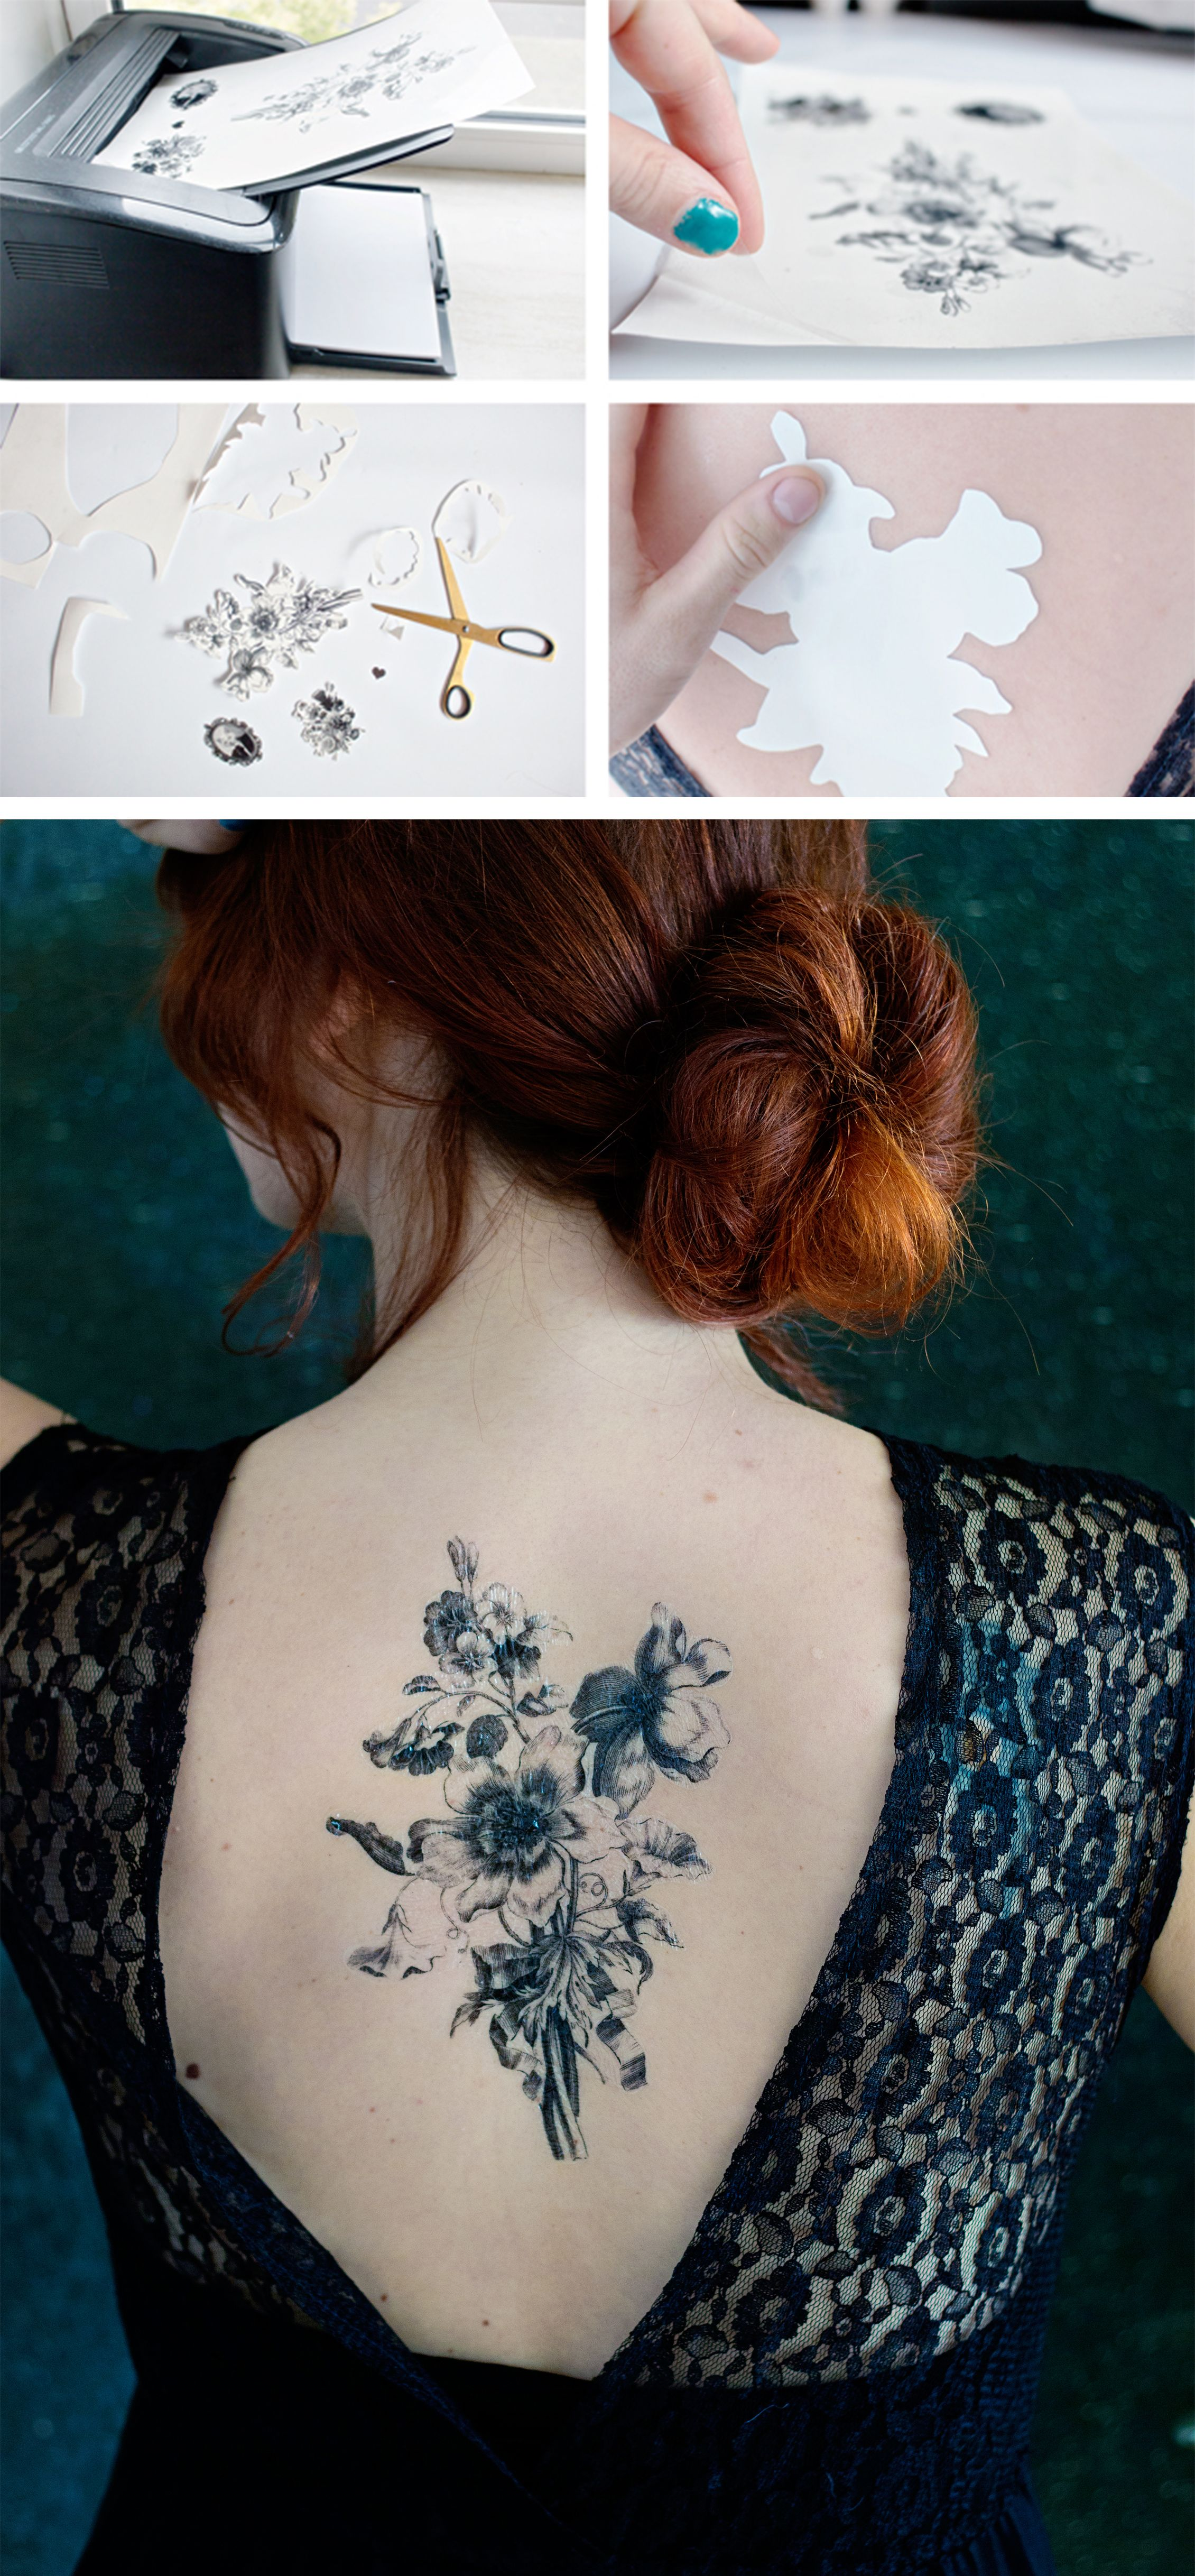 Did You Know That You Can Make Your Own Temporary Tattoos Diy By Lana Red